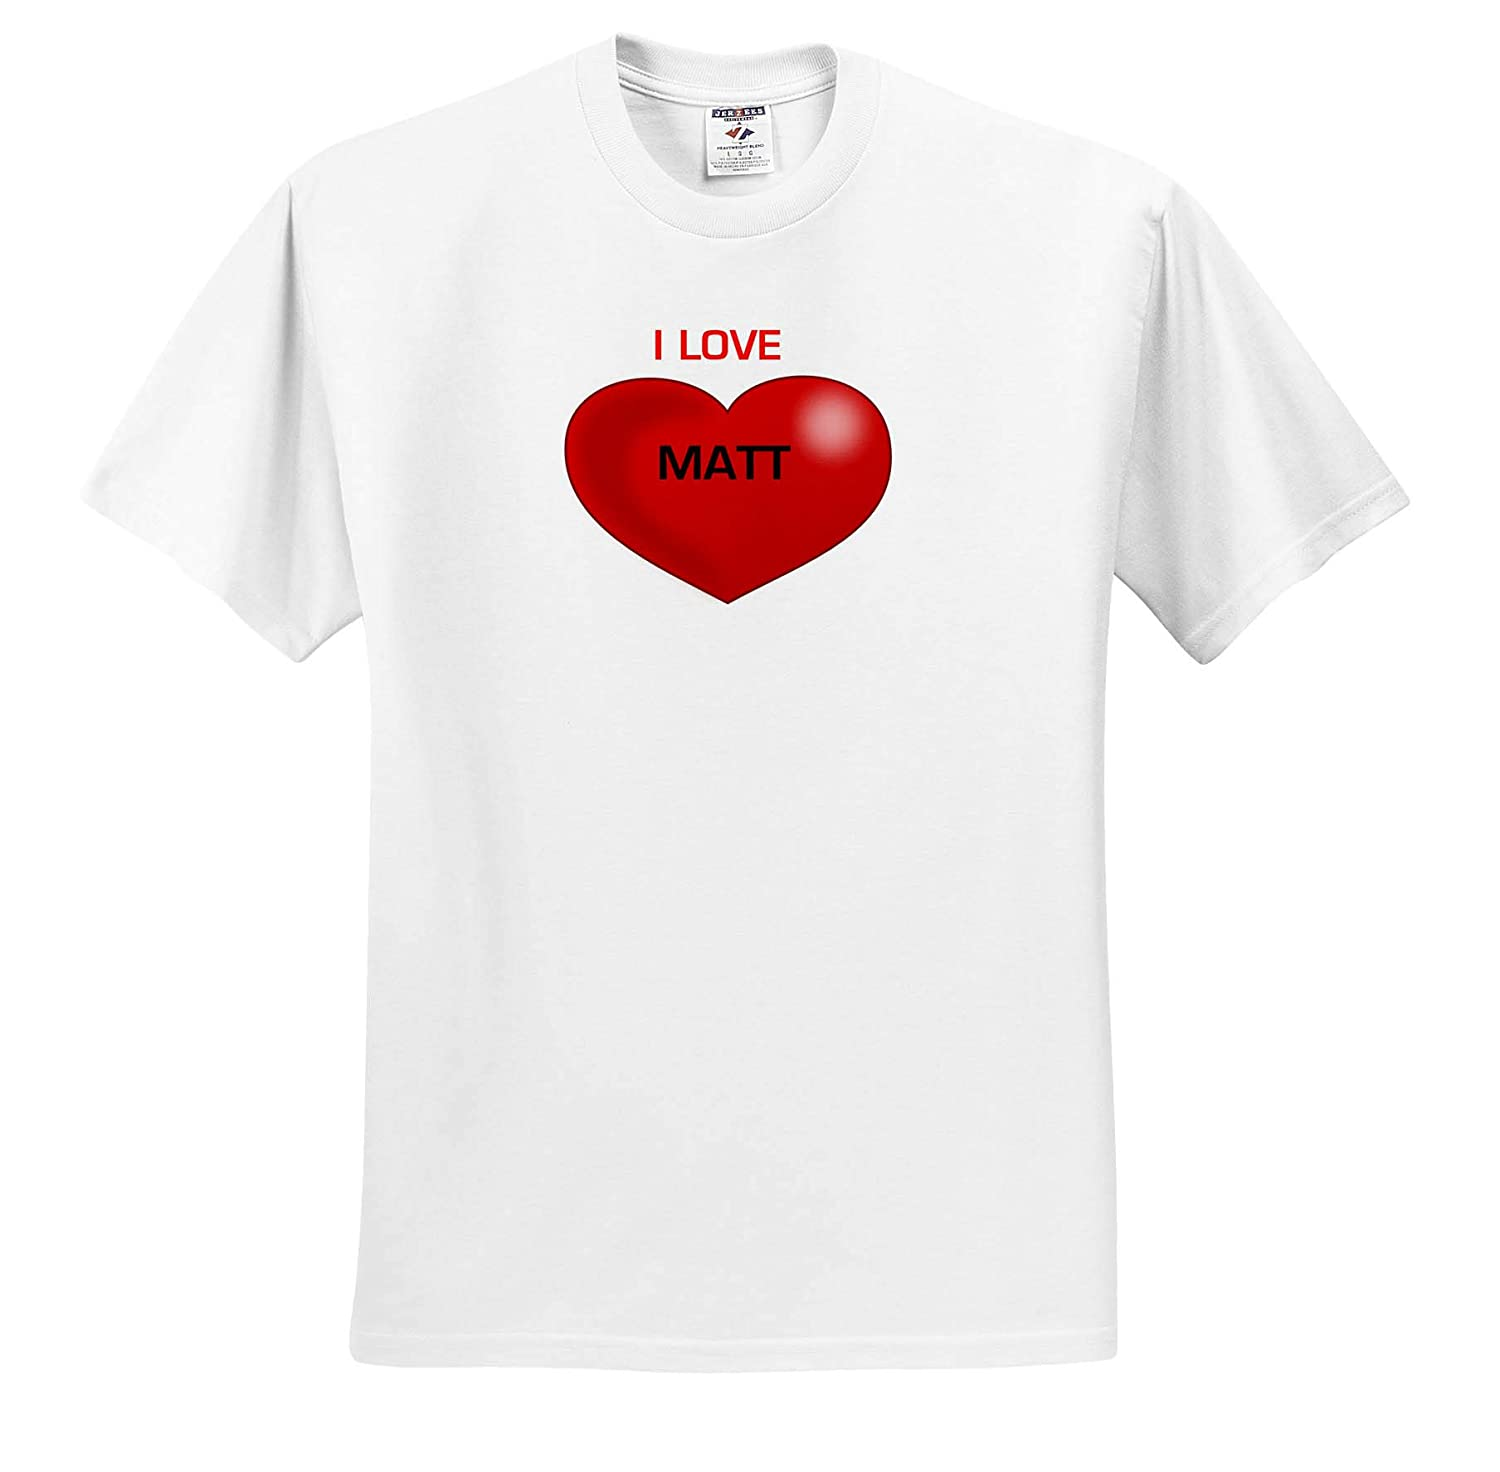 Image of I Love Matt On Big Red Heart T-Shirts 3dRose Lens Art by Florene Love Hearts with Names